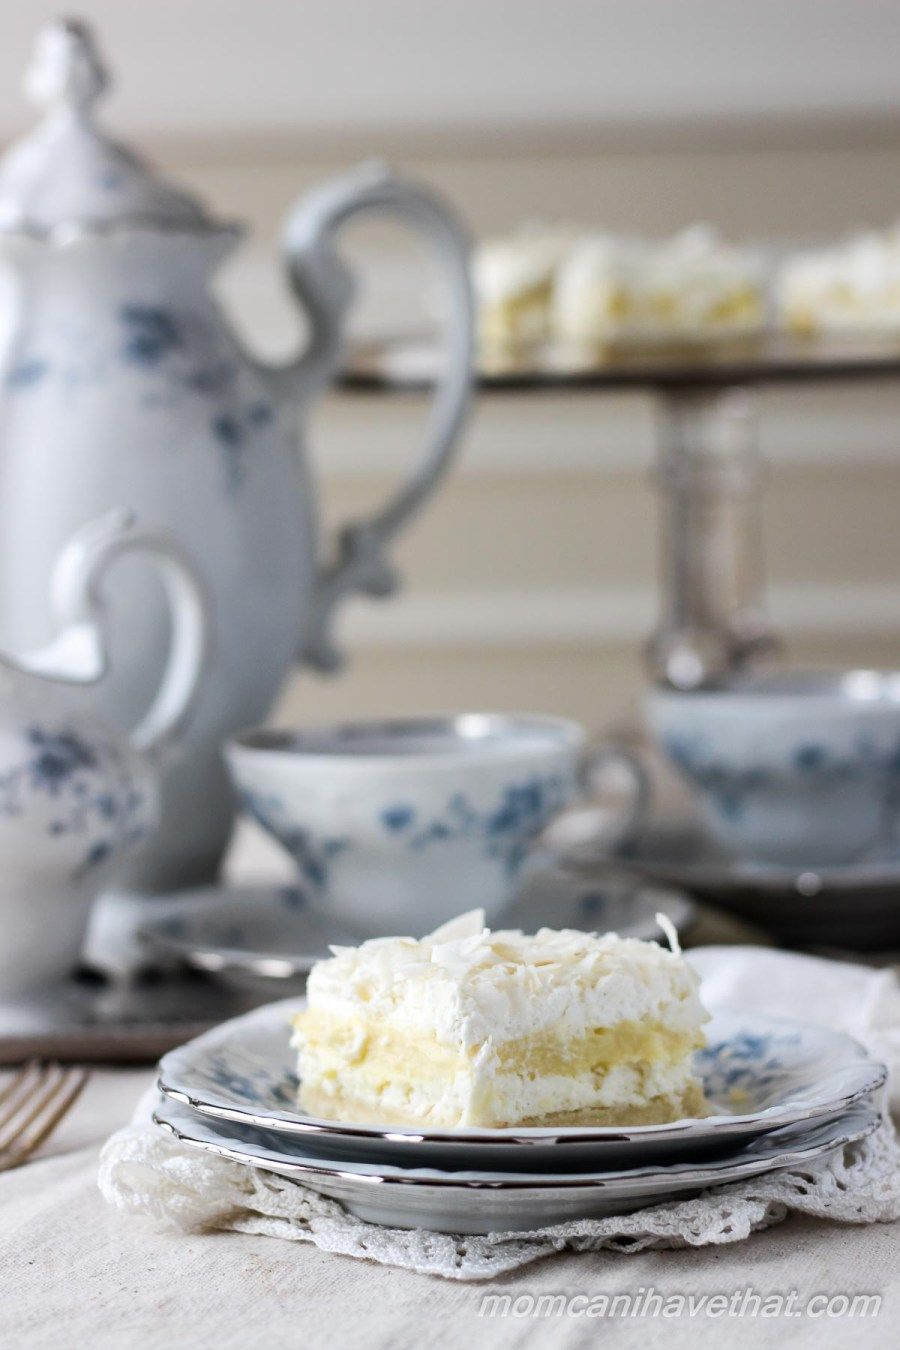 Coconut cream layered dream is made from wholesome